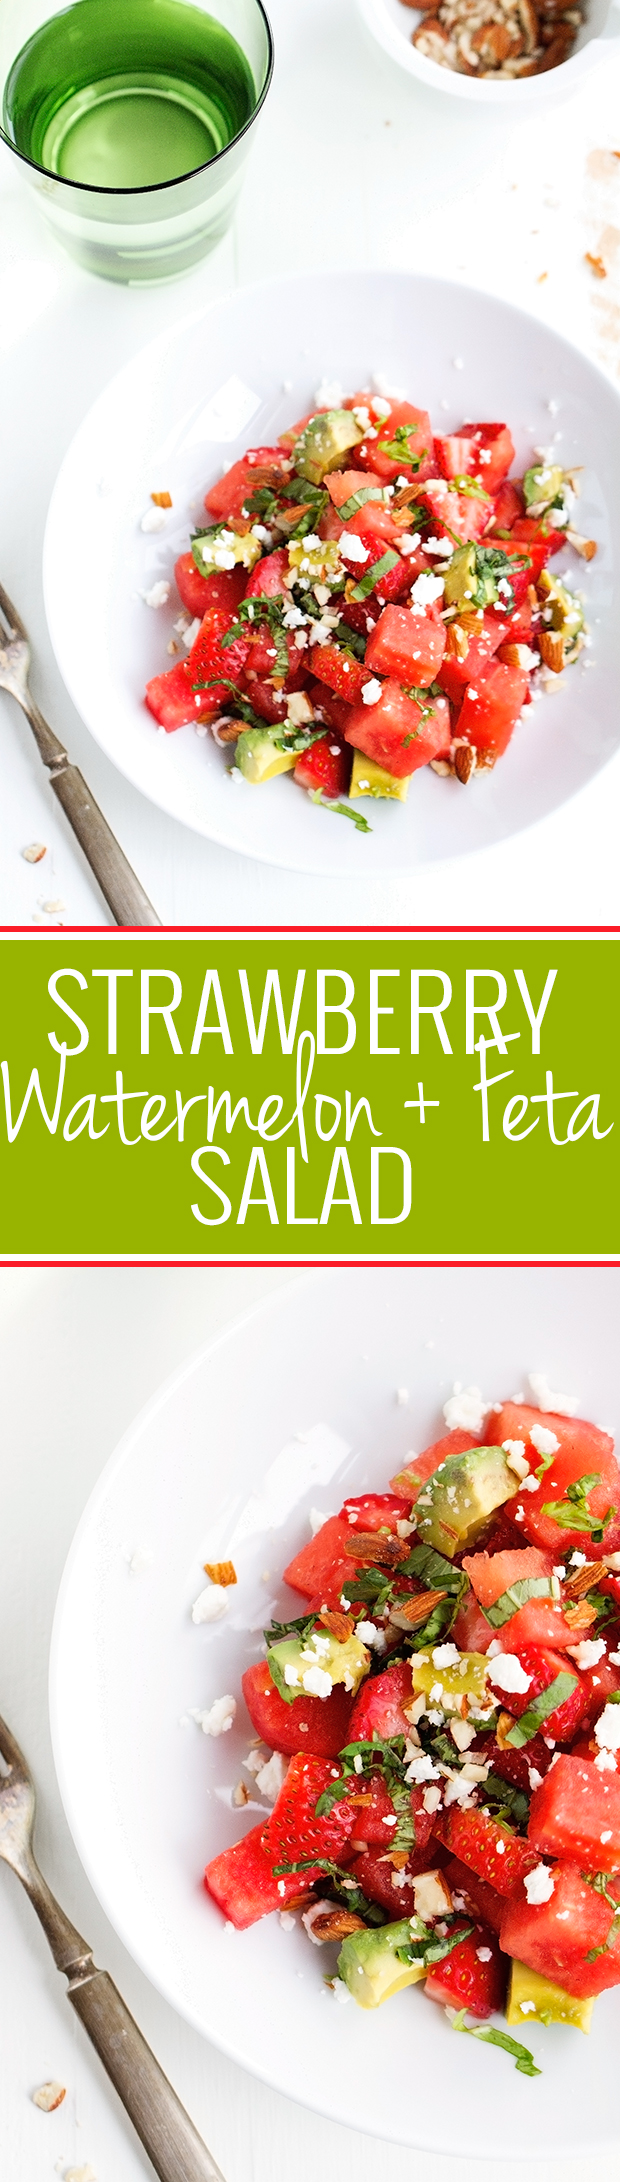 Strawberry Watermelon Feta Salad - The MOST refreshing salad that's perfect to serve for the 4th of July! #4thofjuly #watermelon #watermelonsalad #watermelonfetasalad | Littlespicejar.com